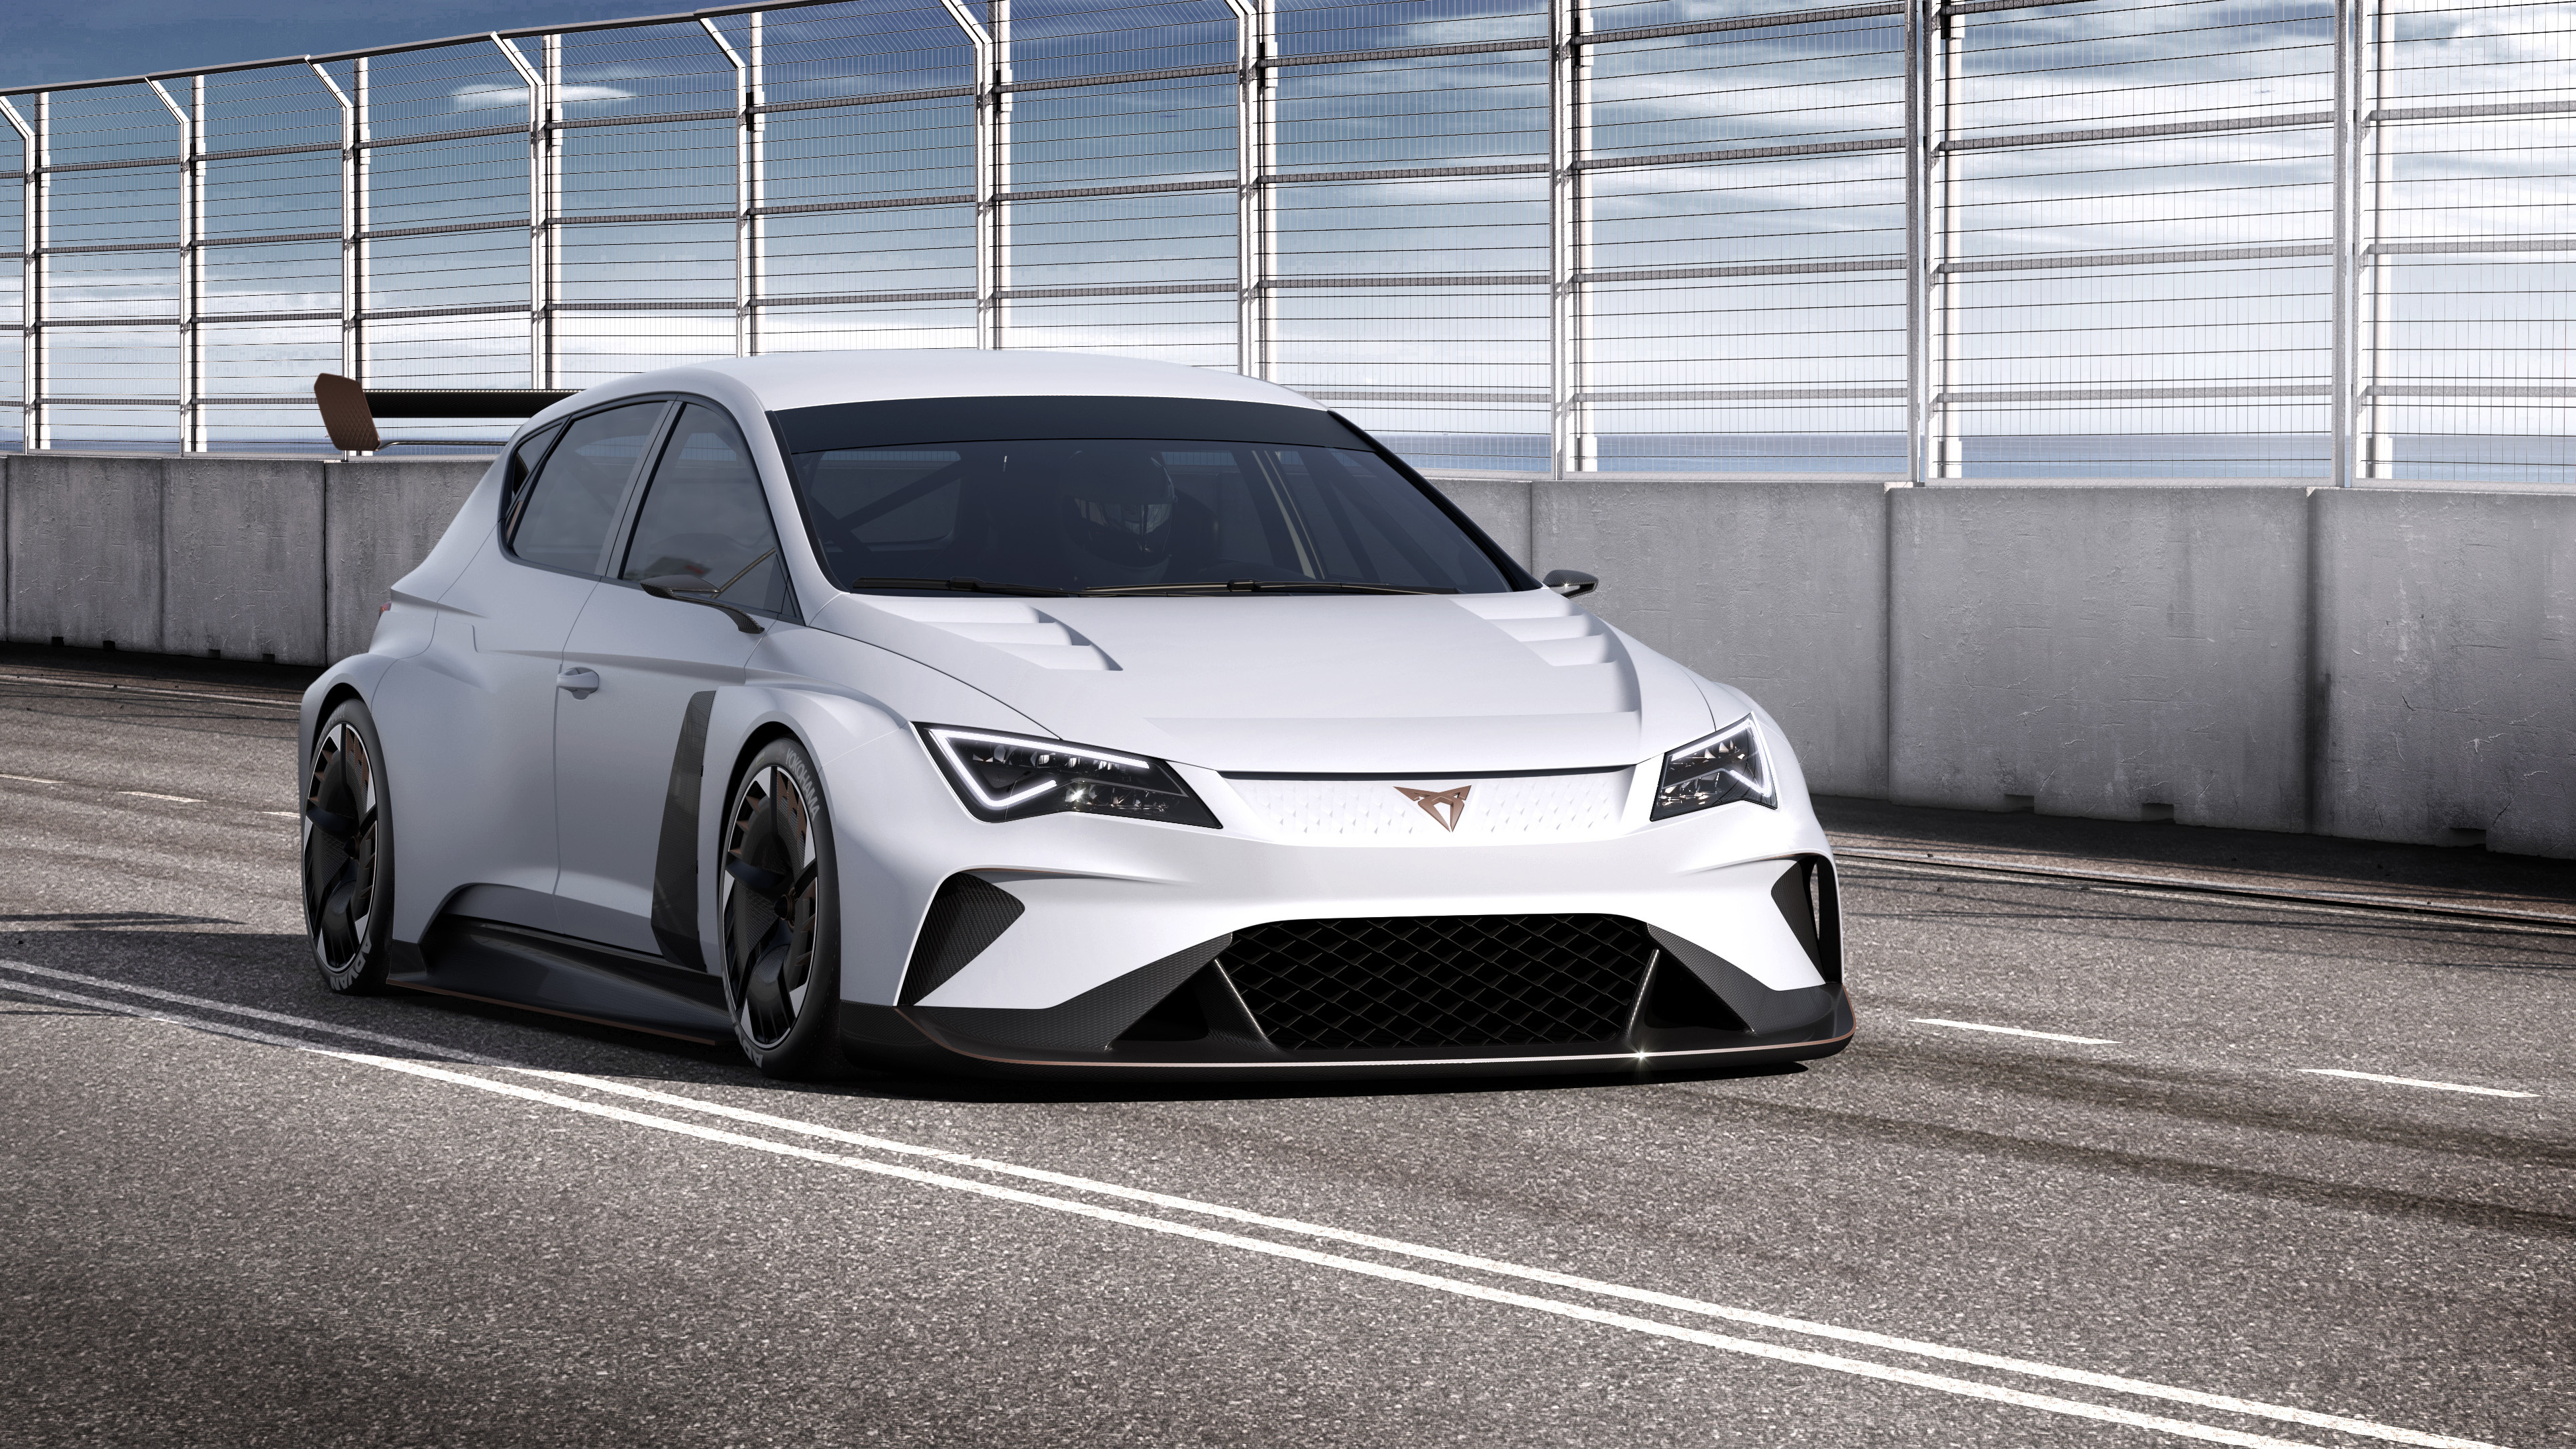 cupra e racer 2018 1539110065 - Cupra E Racer 2018 - hd-wallpapers, cupra wallpapers, cars wallpapers, 4k-wallpapers, 2018 cars wallpapers